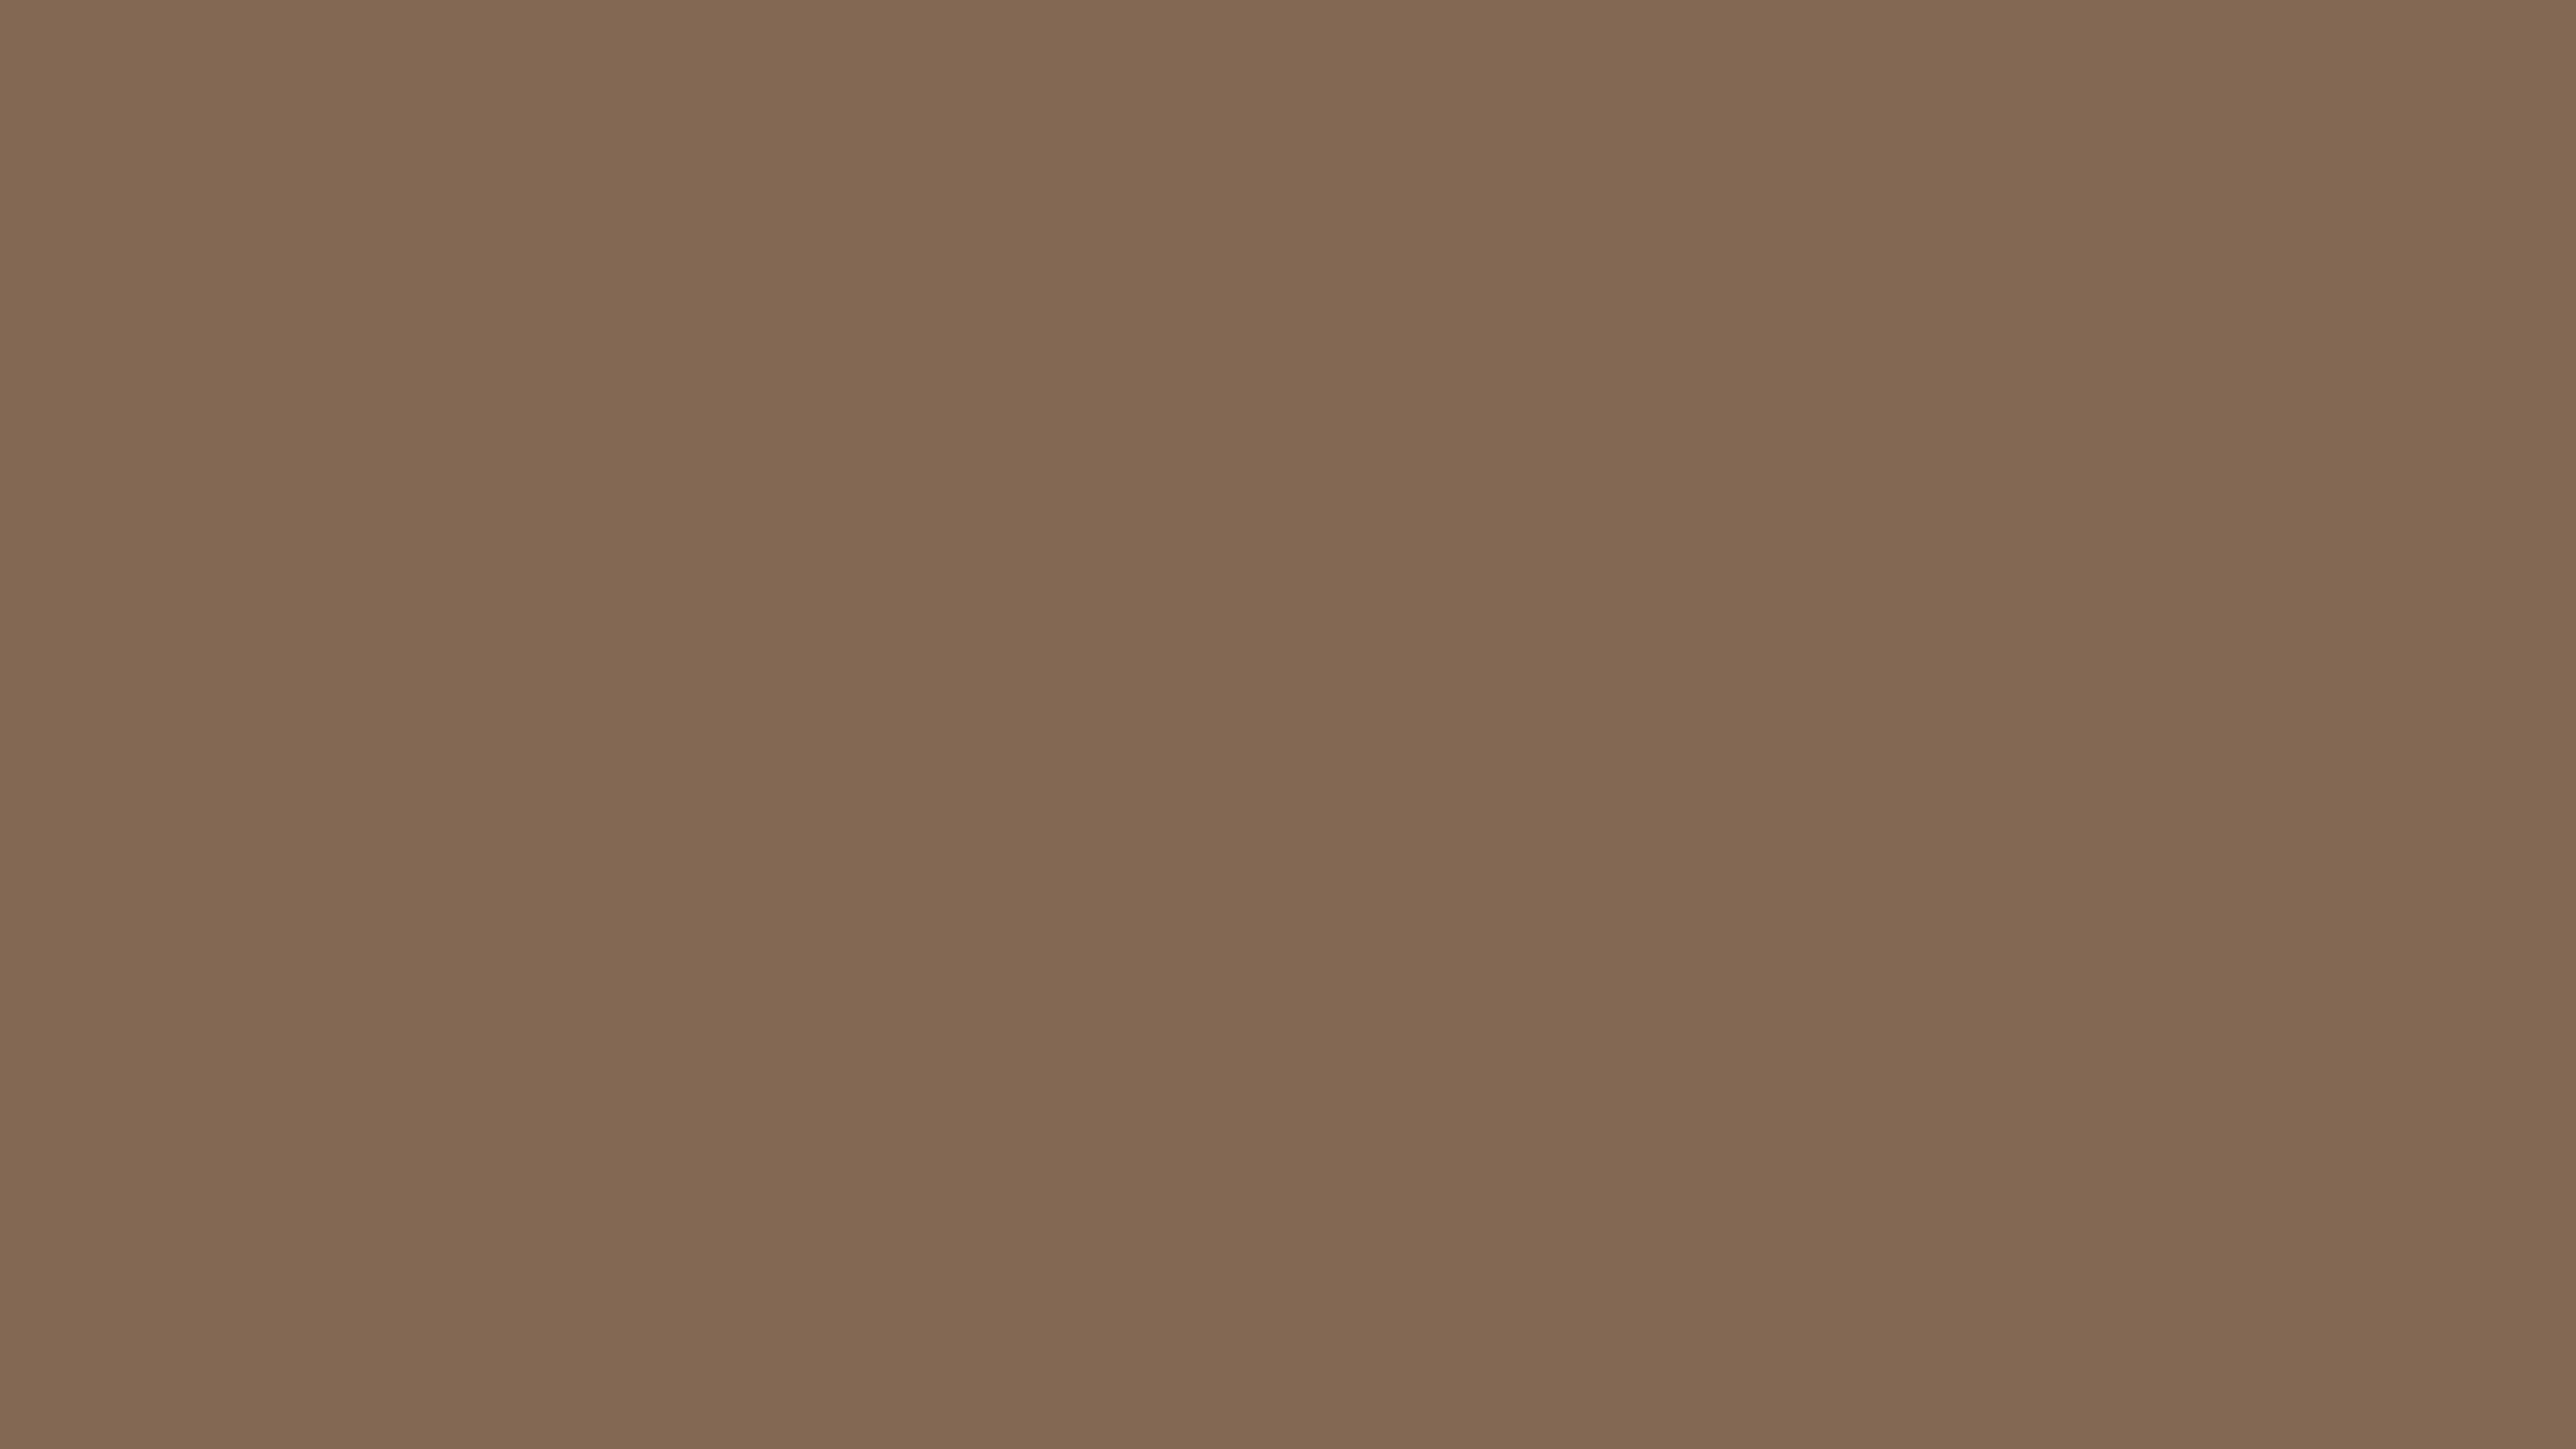 5120x2880 Pastel Brown Solid Color Background